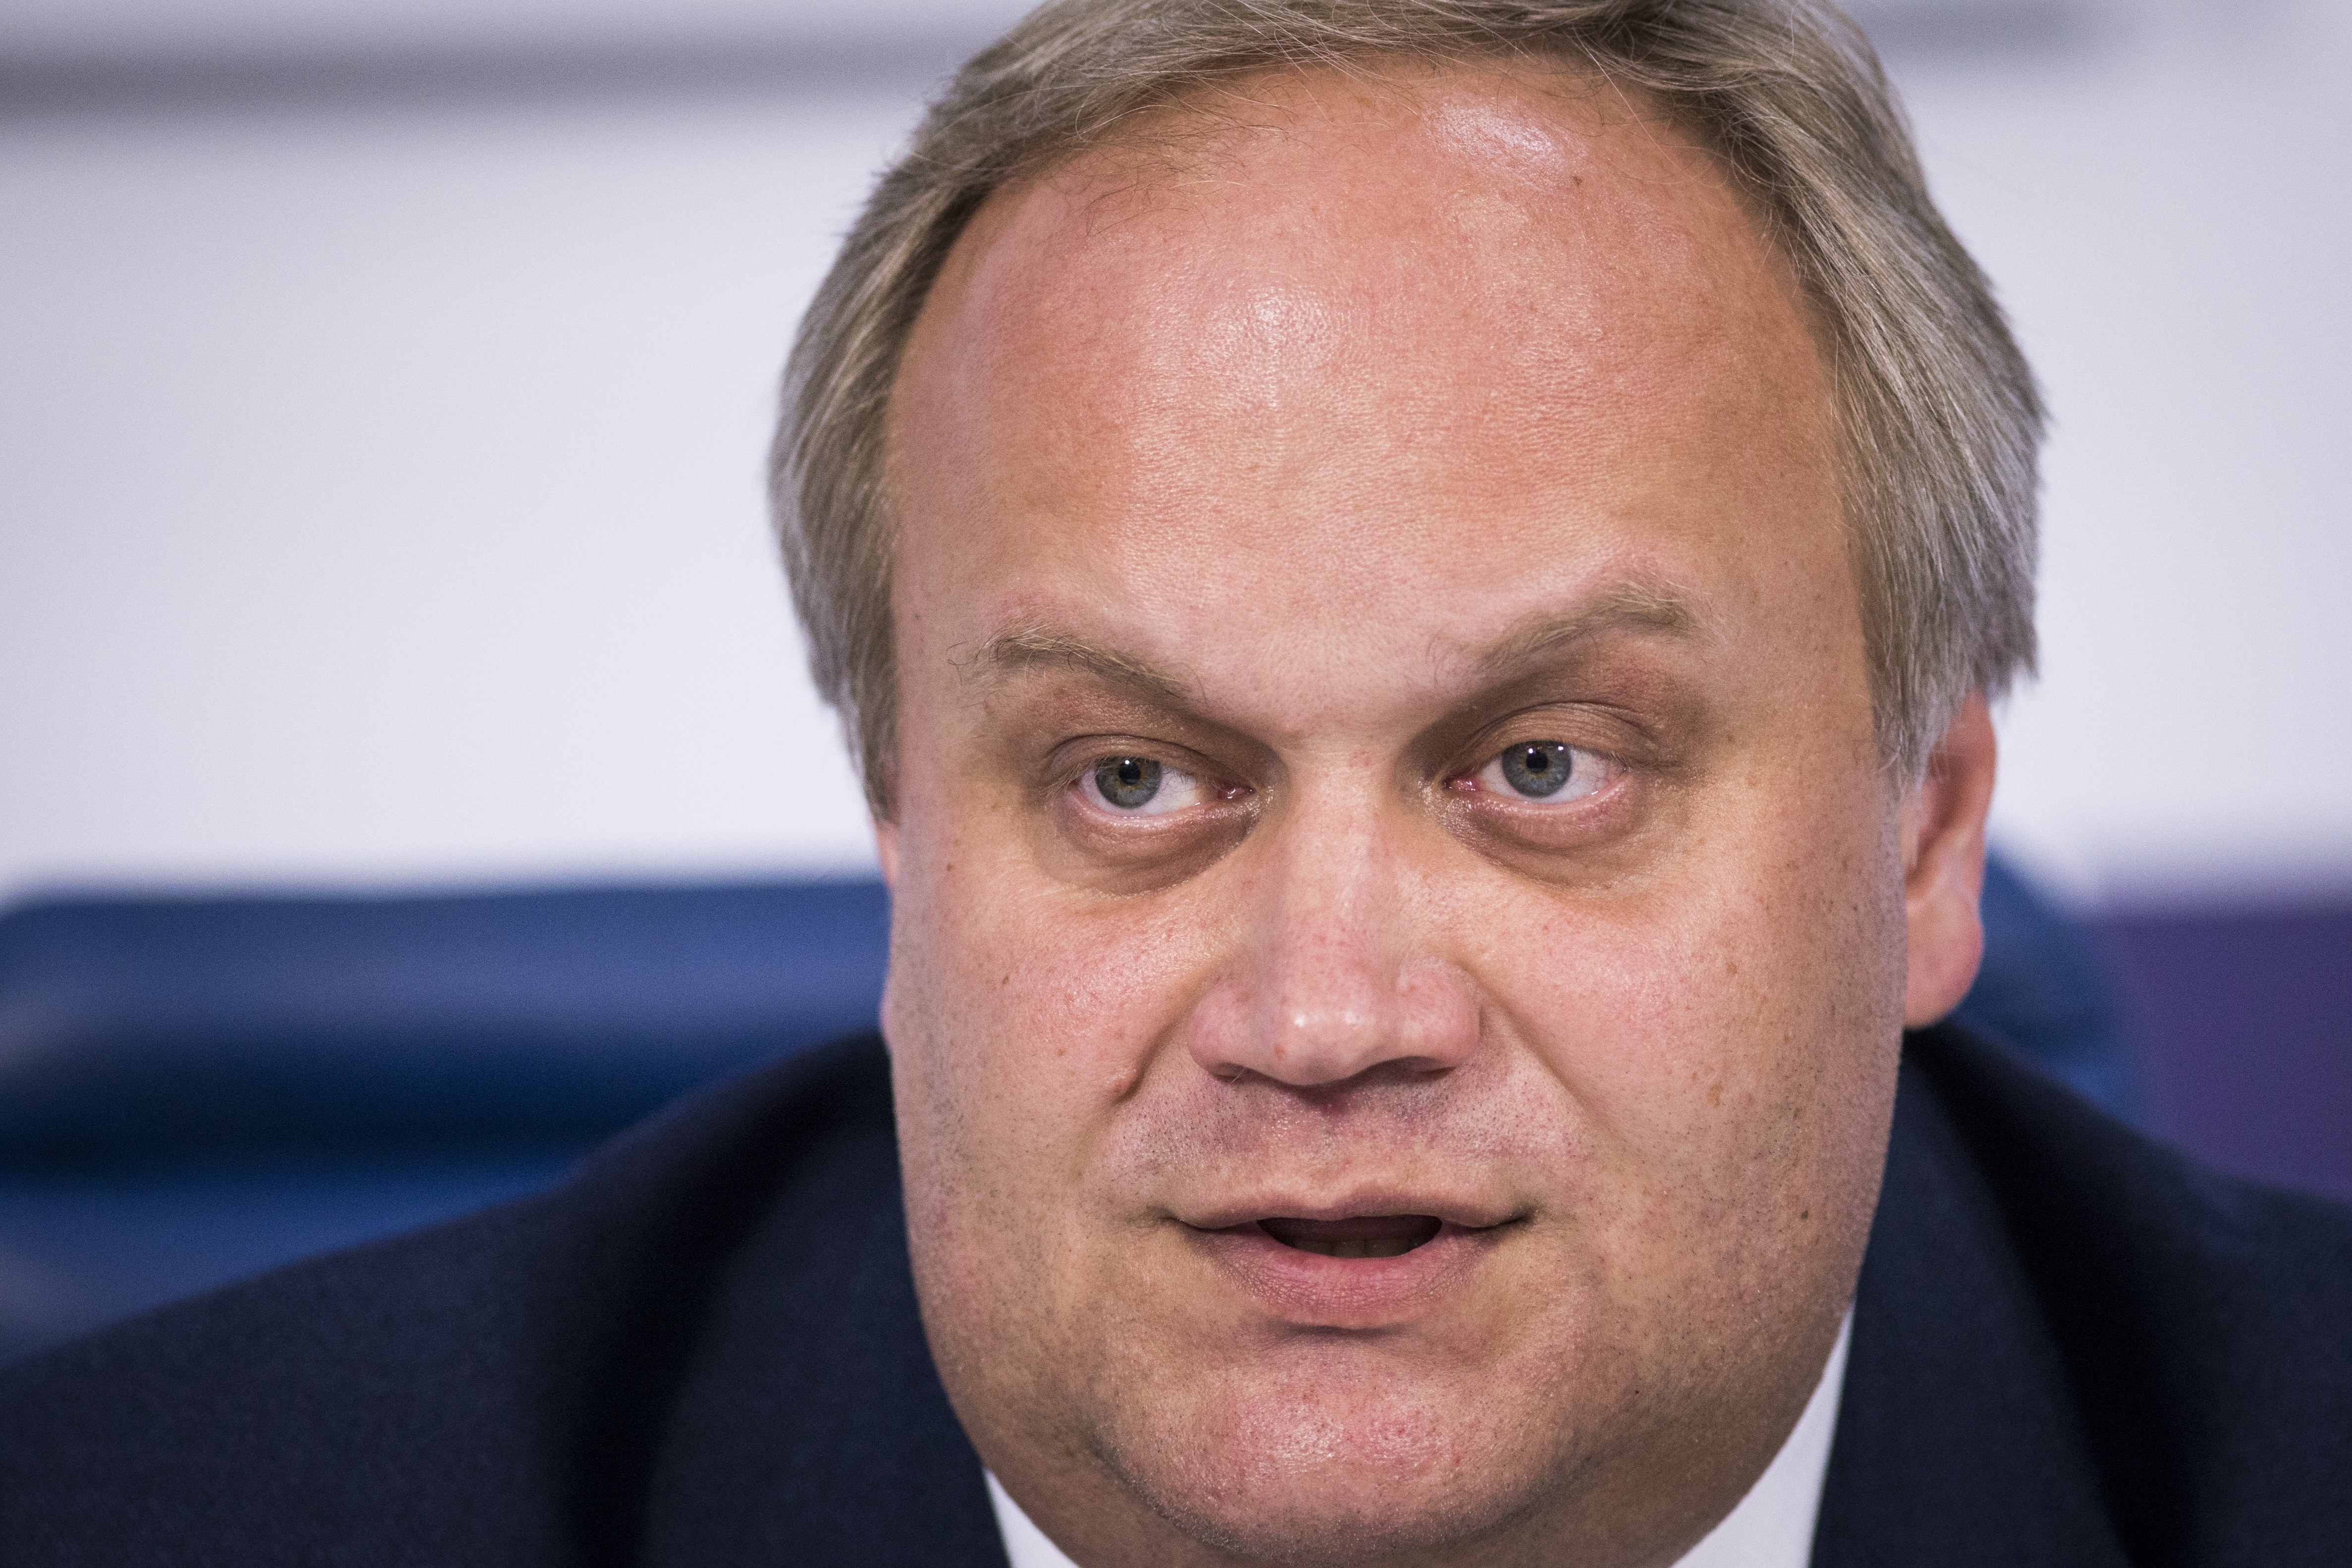 FILE - In this Friday, May 13, 2016 file photo Russian Deputy Sports Minister Yuri Nagornykh speaks at a news conference in Moscow, Russia. Russian Deputy Sports Minister Yuri Nagornykh who was suspended following allegations he covered up doping cases at